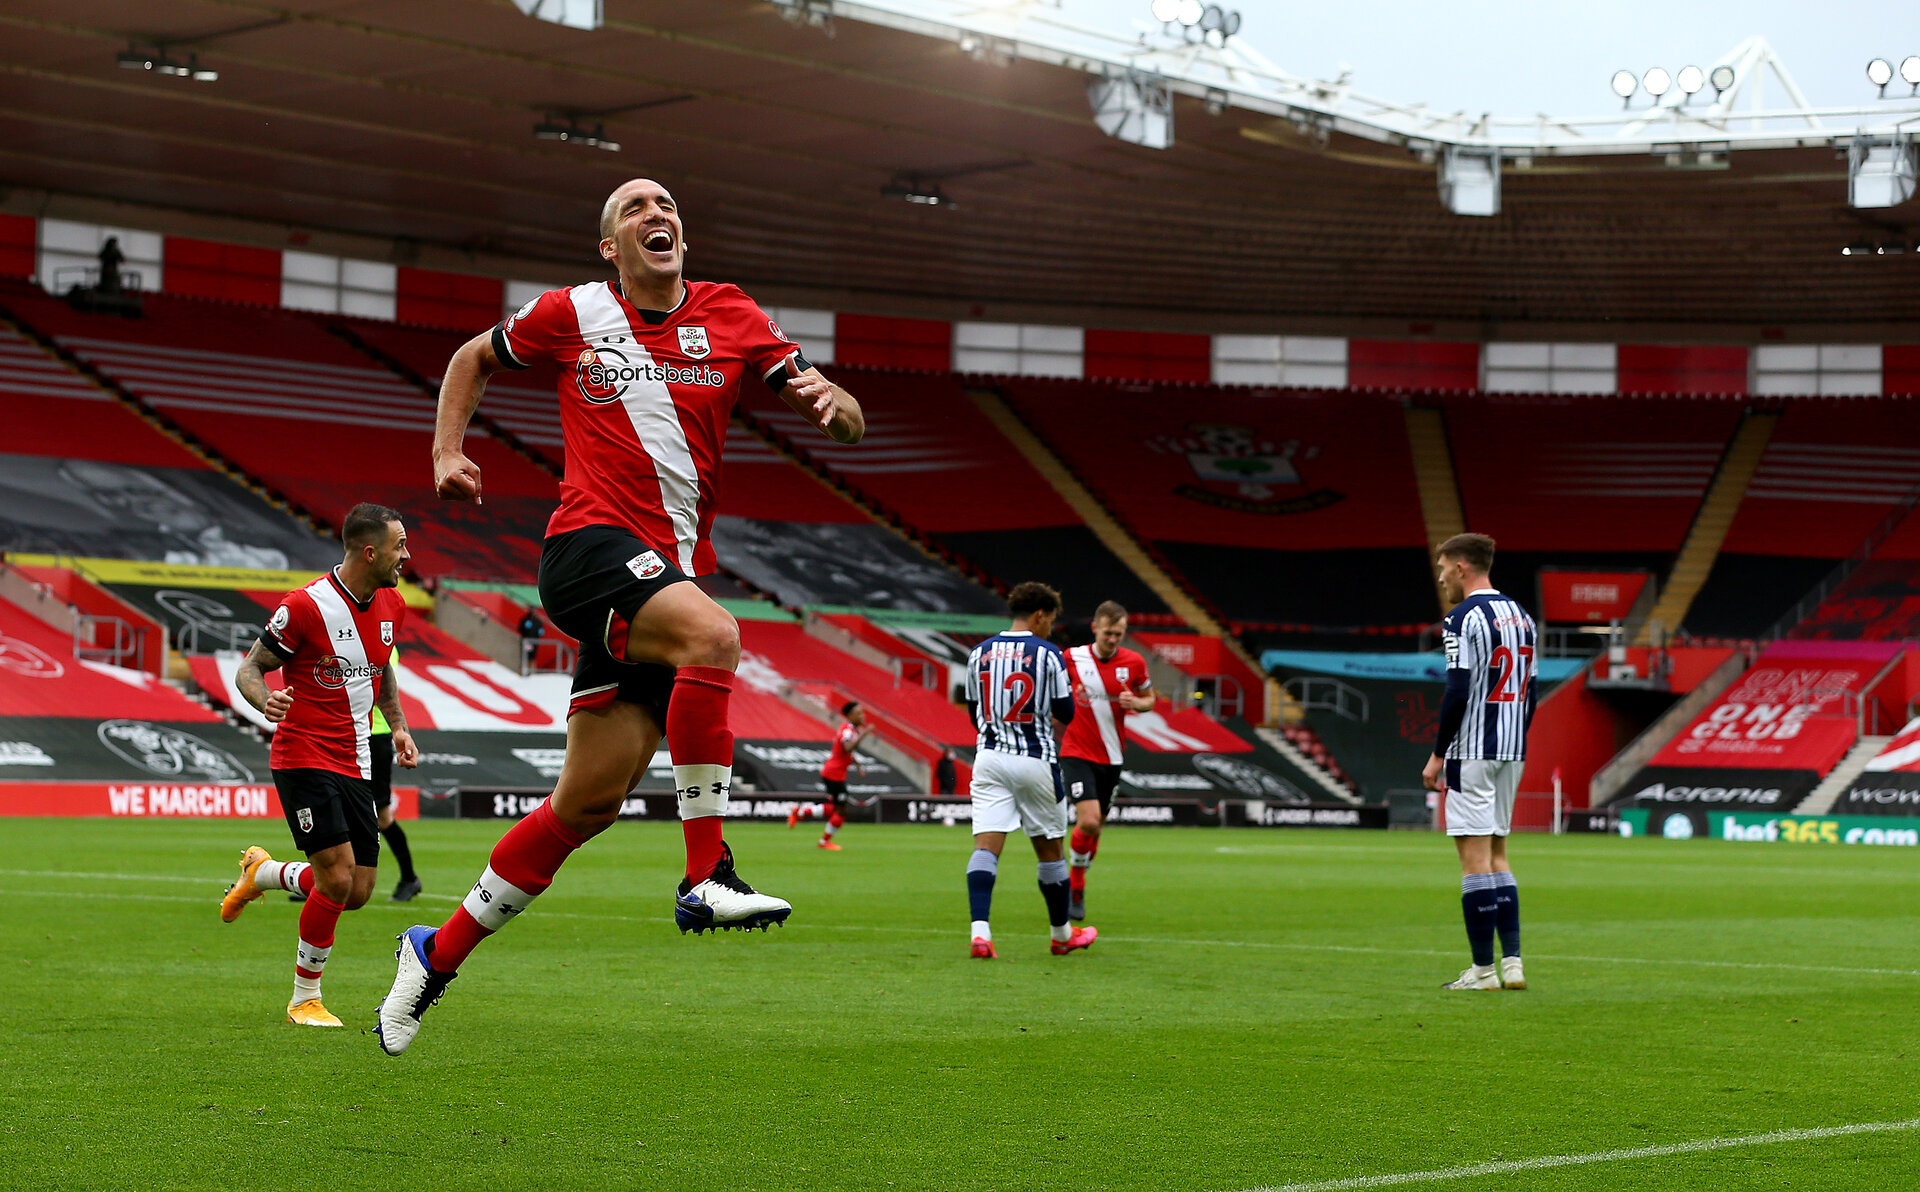 SOUTHAMPTON, ENGLAND - OCTOBER 04: Oriol Romeu of Southampton celebrates after scoring during the Premier League match between Southampton and West Bromwich Albion at St Mary's Stadium on October 04, 2020 in Southampton, United Kingdom. Sporting stadiums around the UK remain under strict restrictions due to the Coronavirus Pandemic as Government social distancing laws prohibit fans inside venues resulting in games being played behind closed doors. (Photo by Matt Watson/Southampton FC via Getty Images)